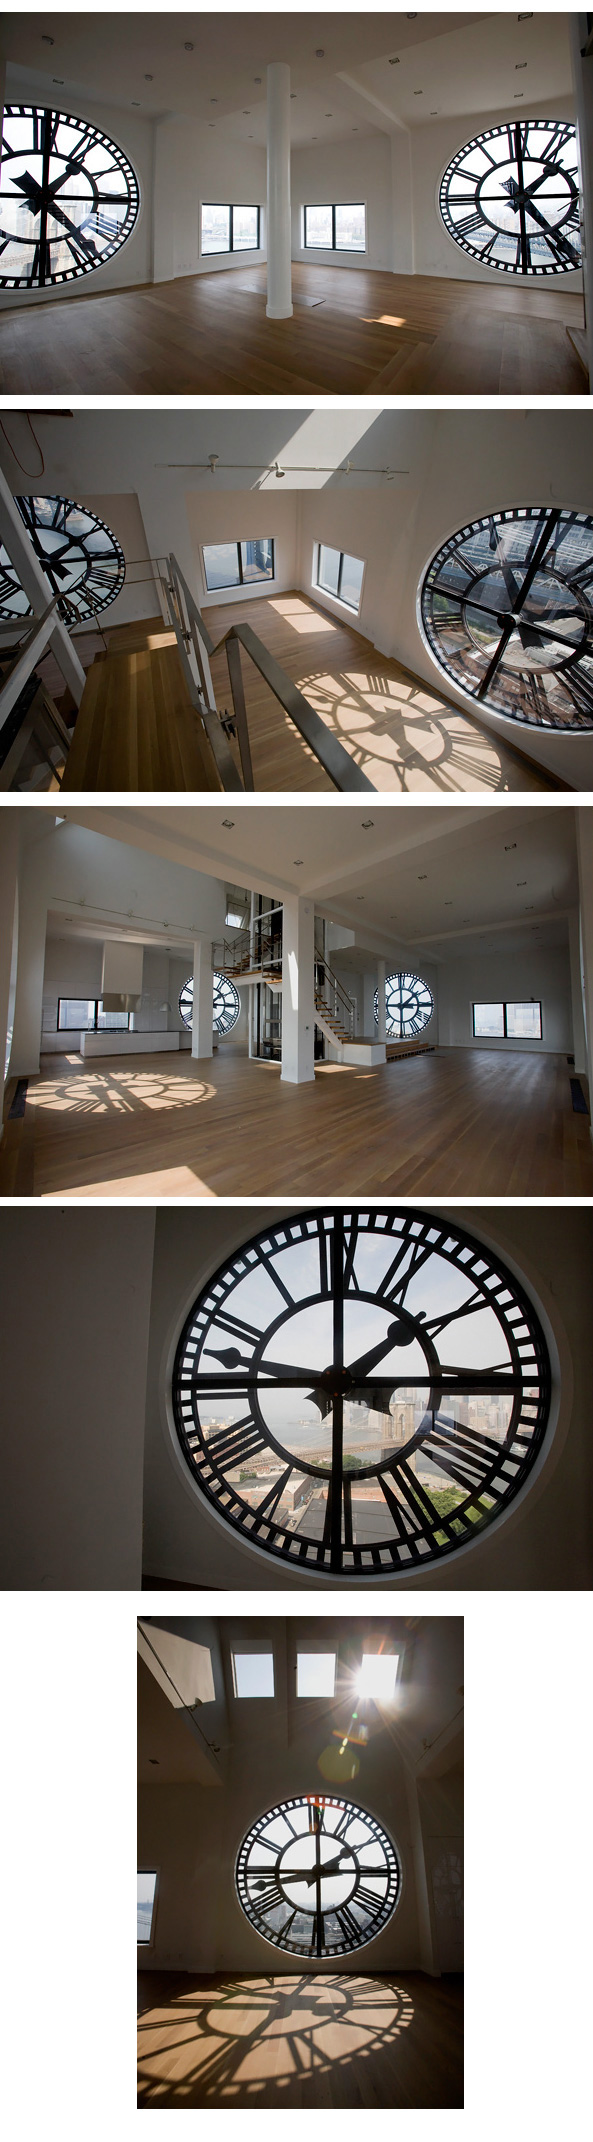 Home with watch clock